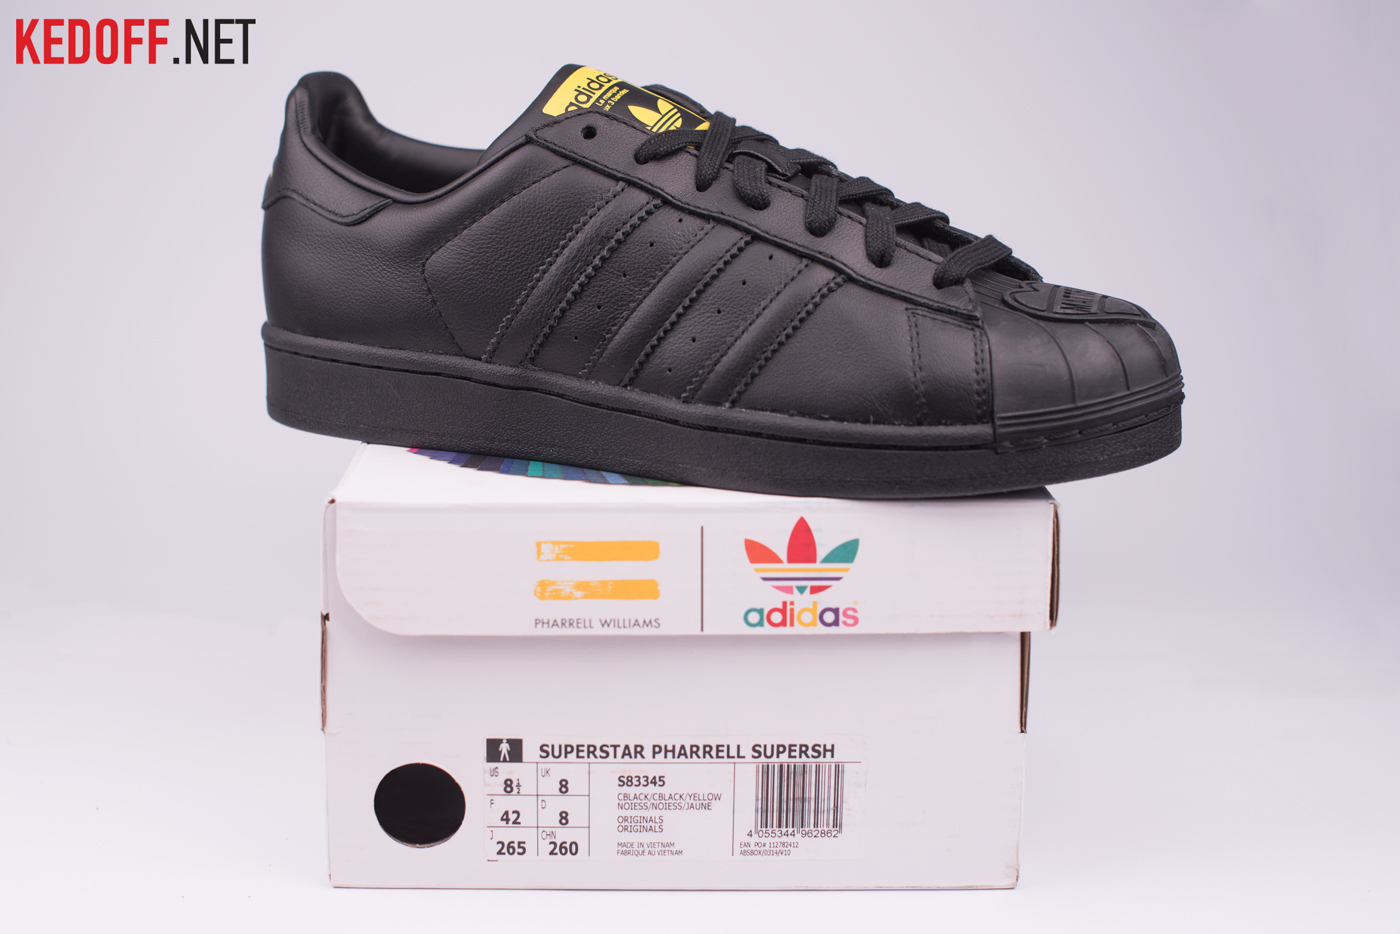 Adidas Superstar Pharrell Williams Supershell S83345